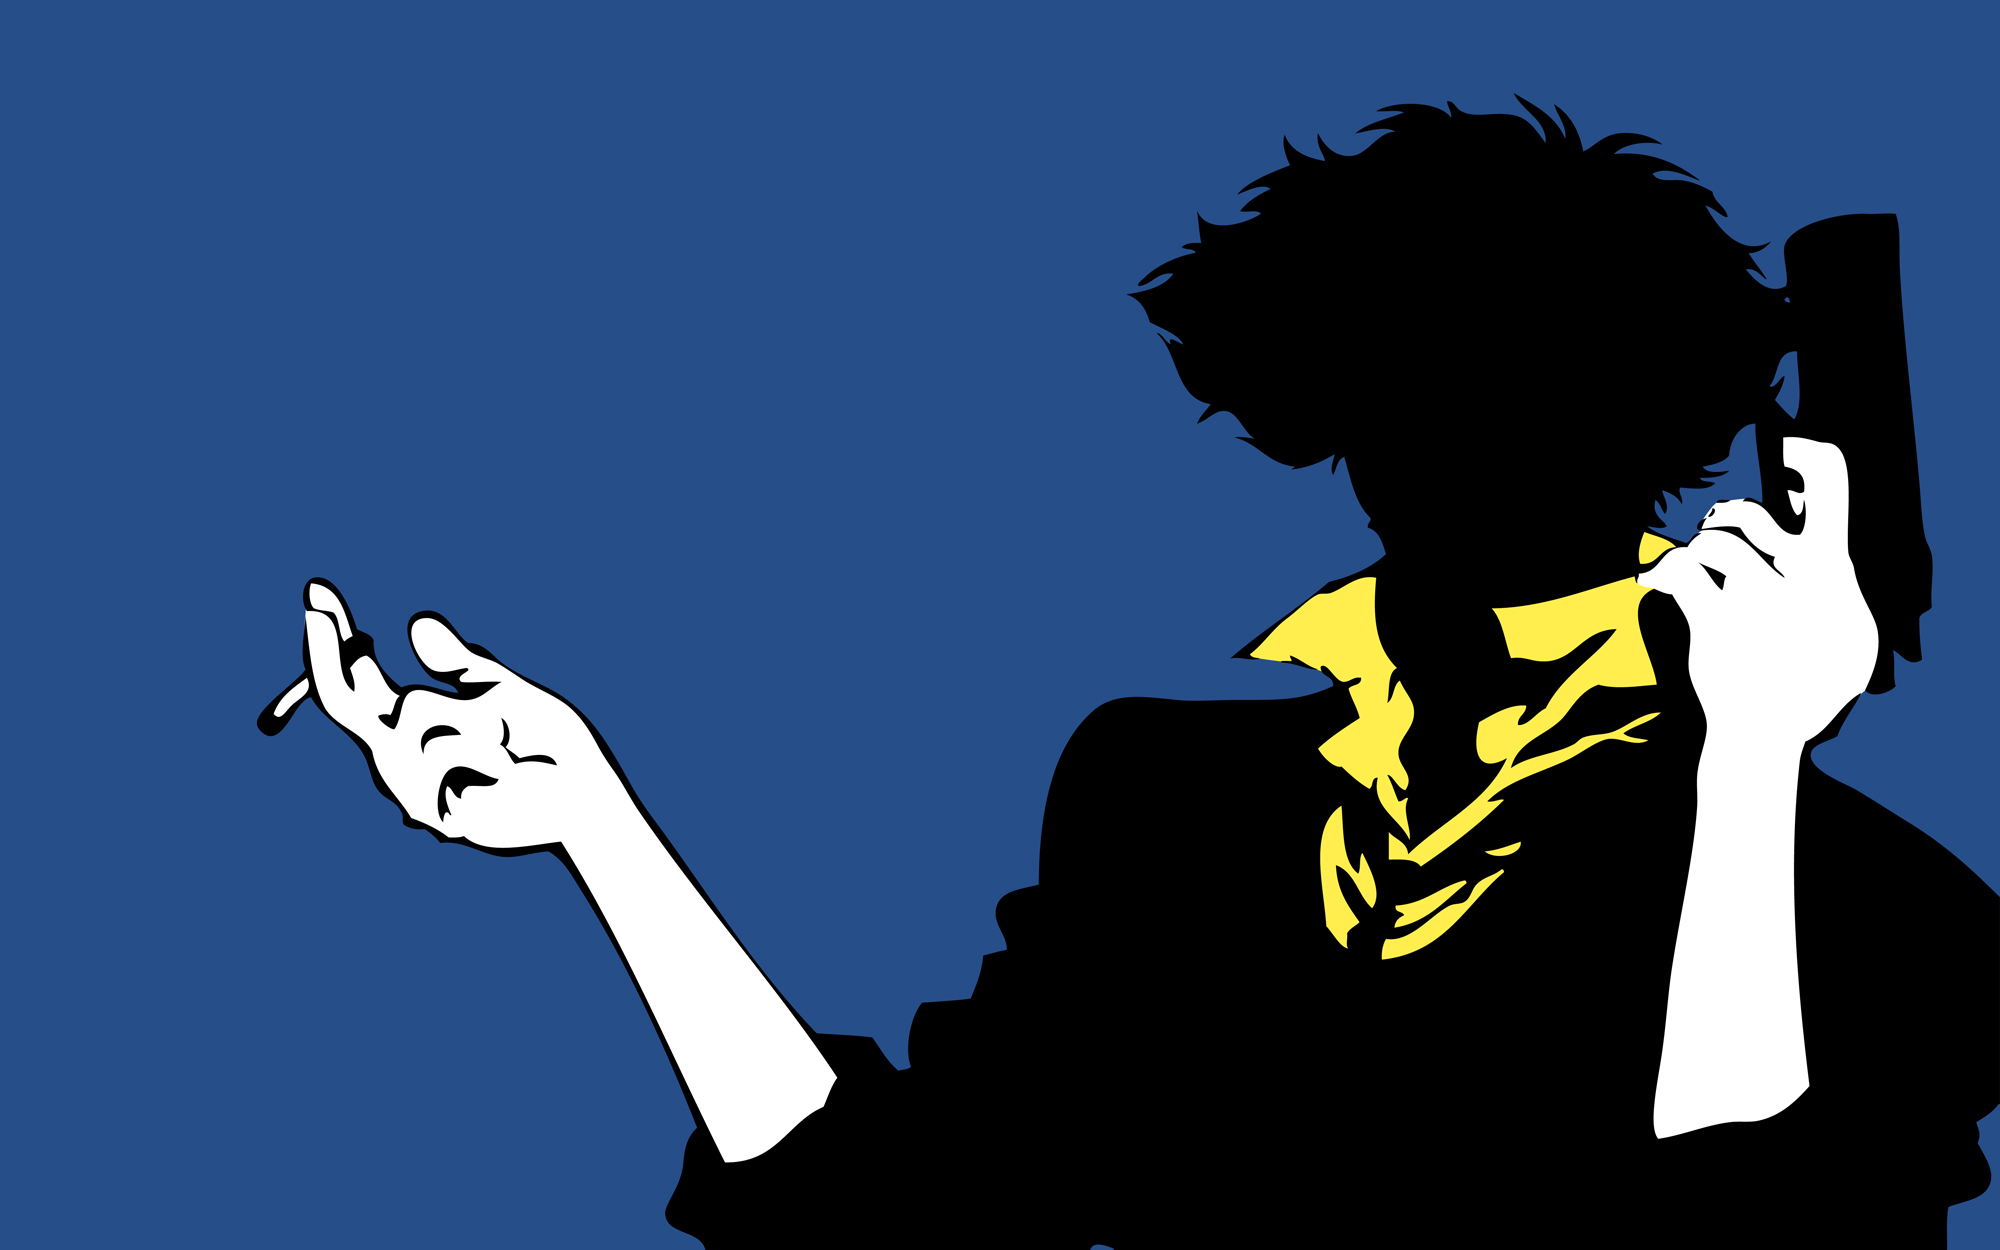 Download Wallpaper Movie Cowboy Bebop - 7d233507efe3dcc8bd340b05723add5ad22161b7  Perfect Image Reference_505585.png